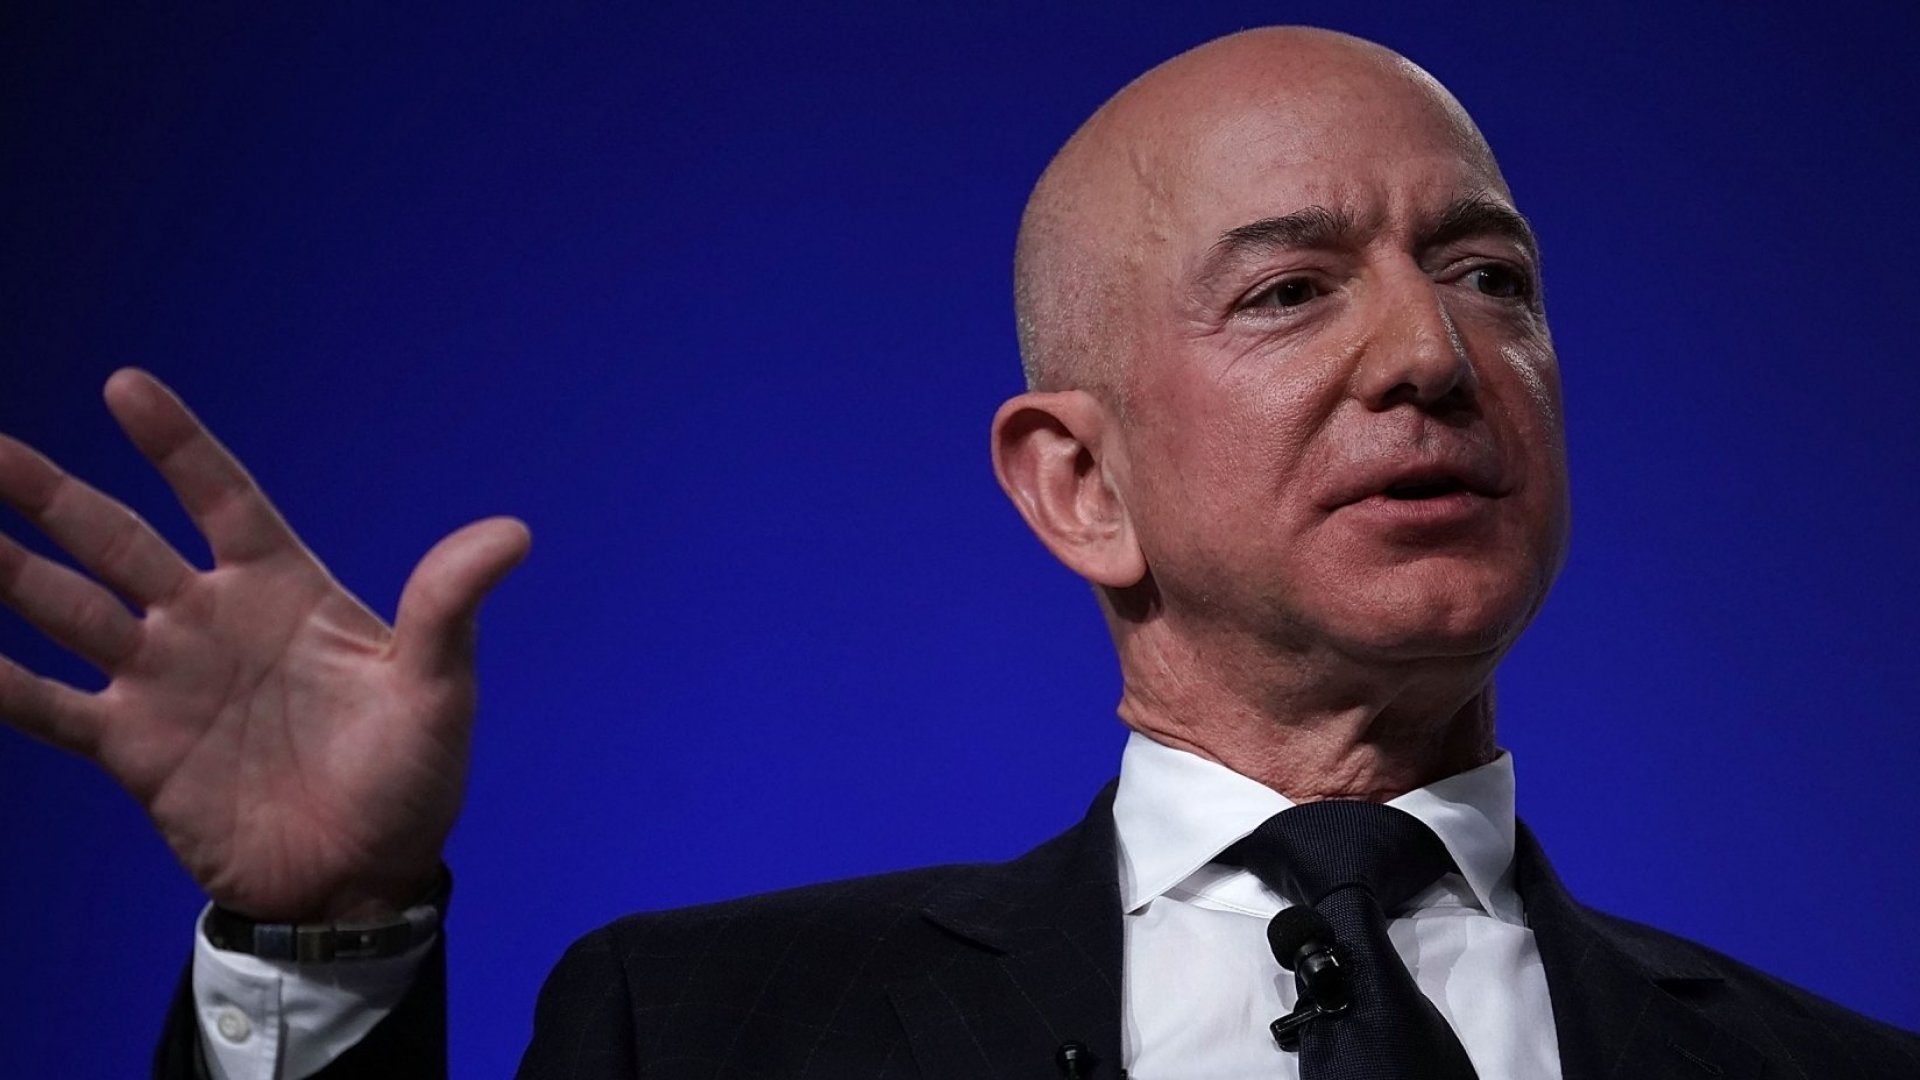 Jeff Bezos Has Lost About $22 Billion This Month, More Than Elon Musk's Entire Net Worth. Here's What That Really Looks Like